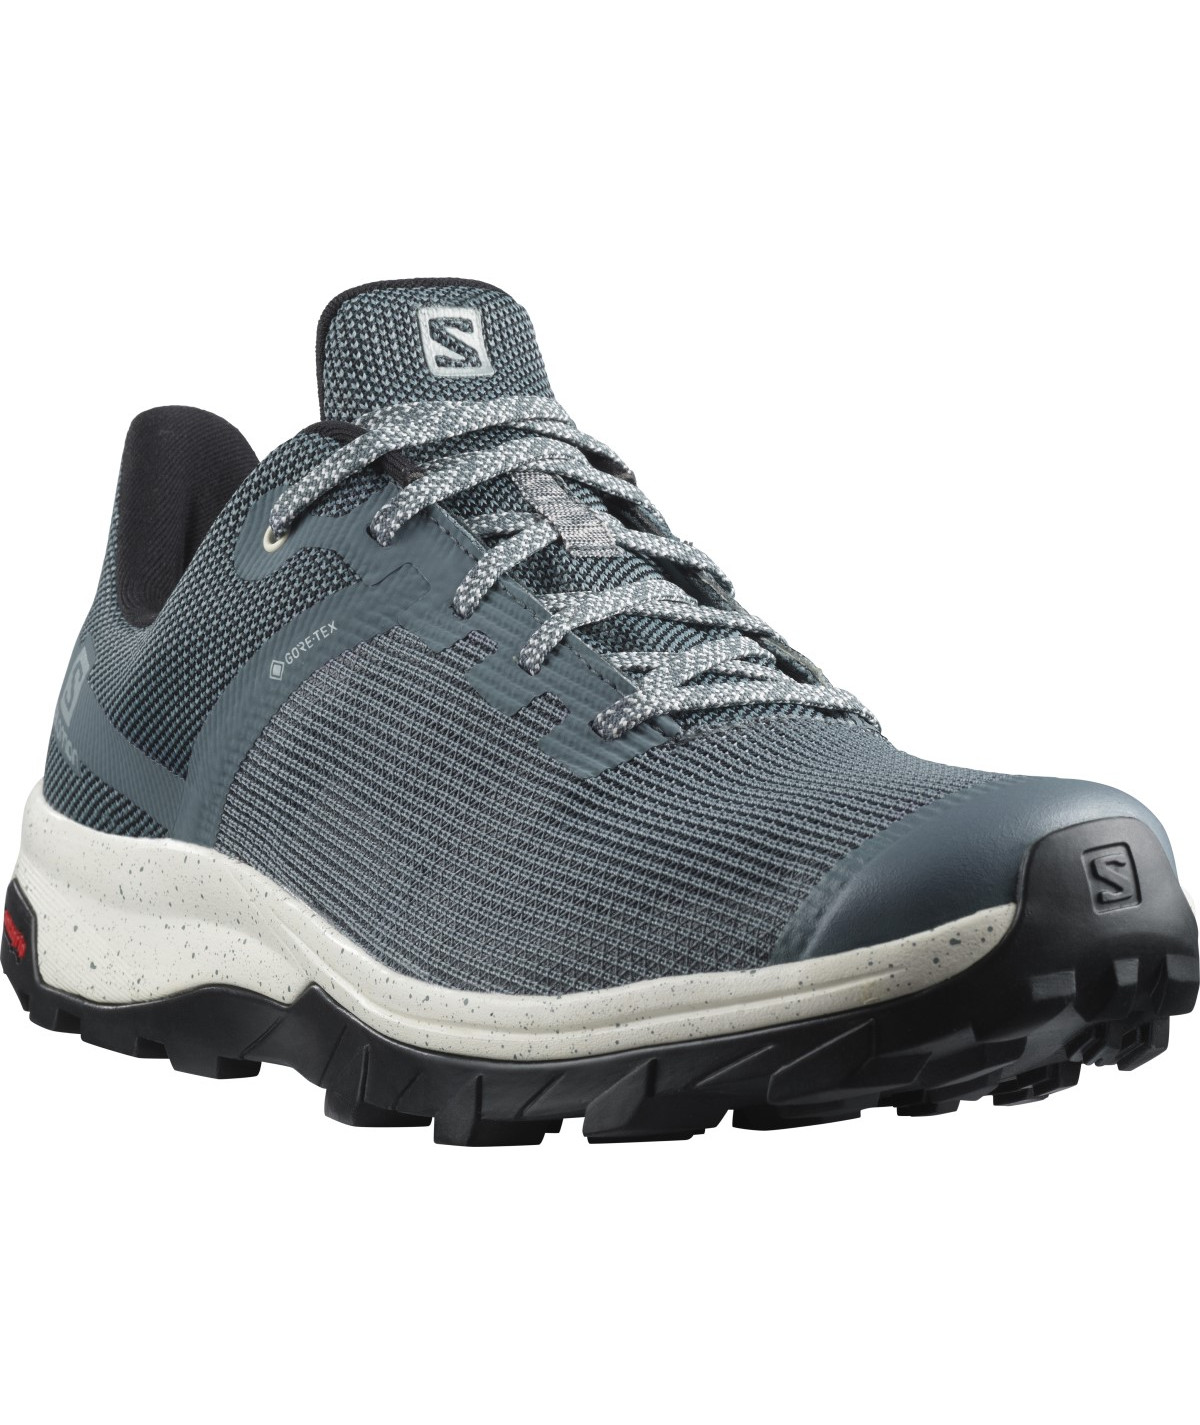 SALOMON - Outline Prism GTX